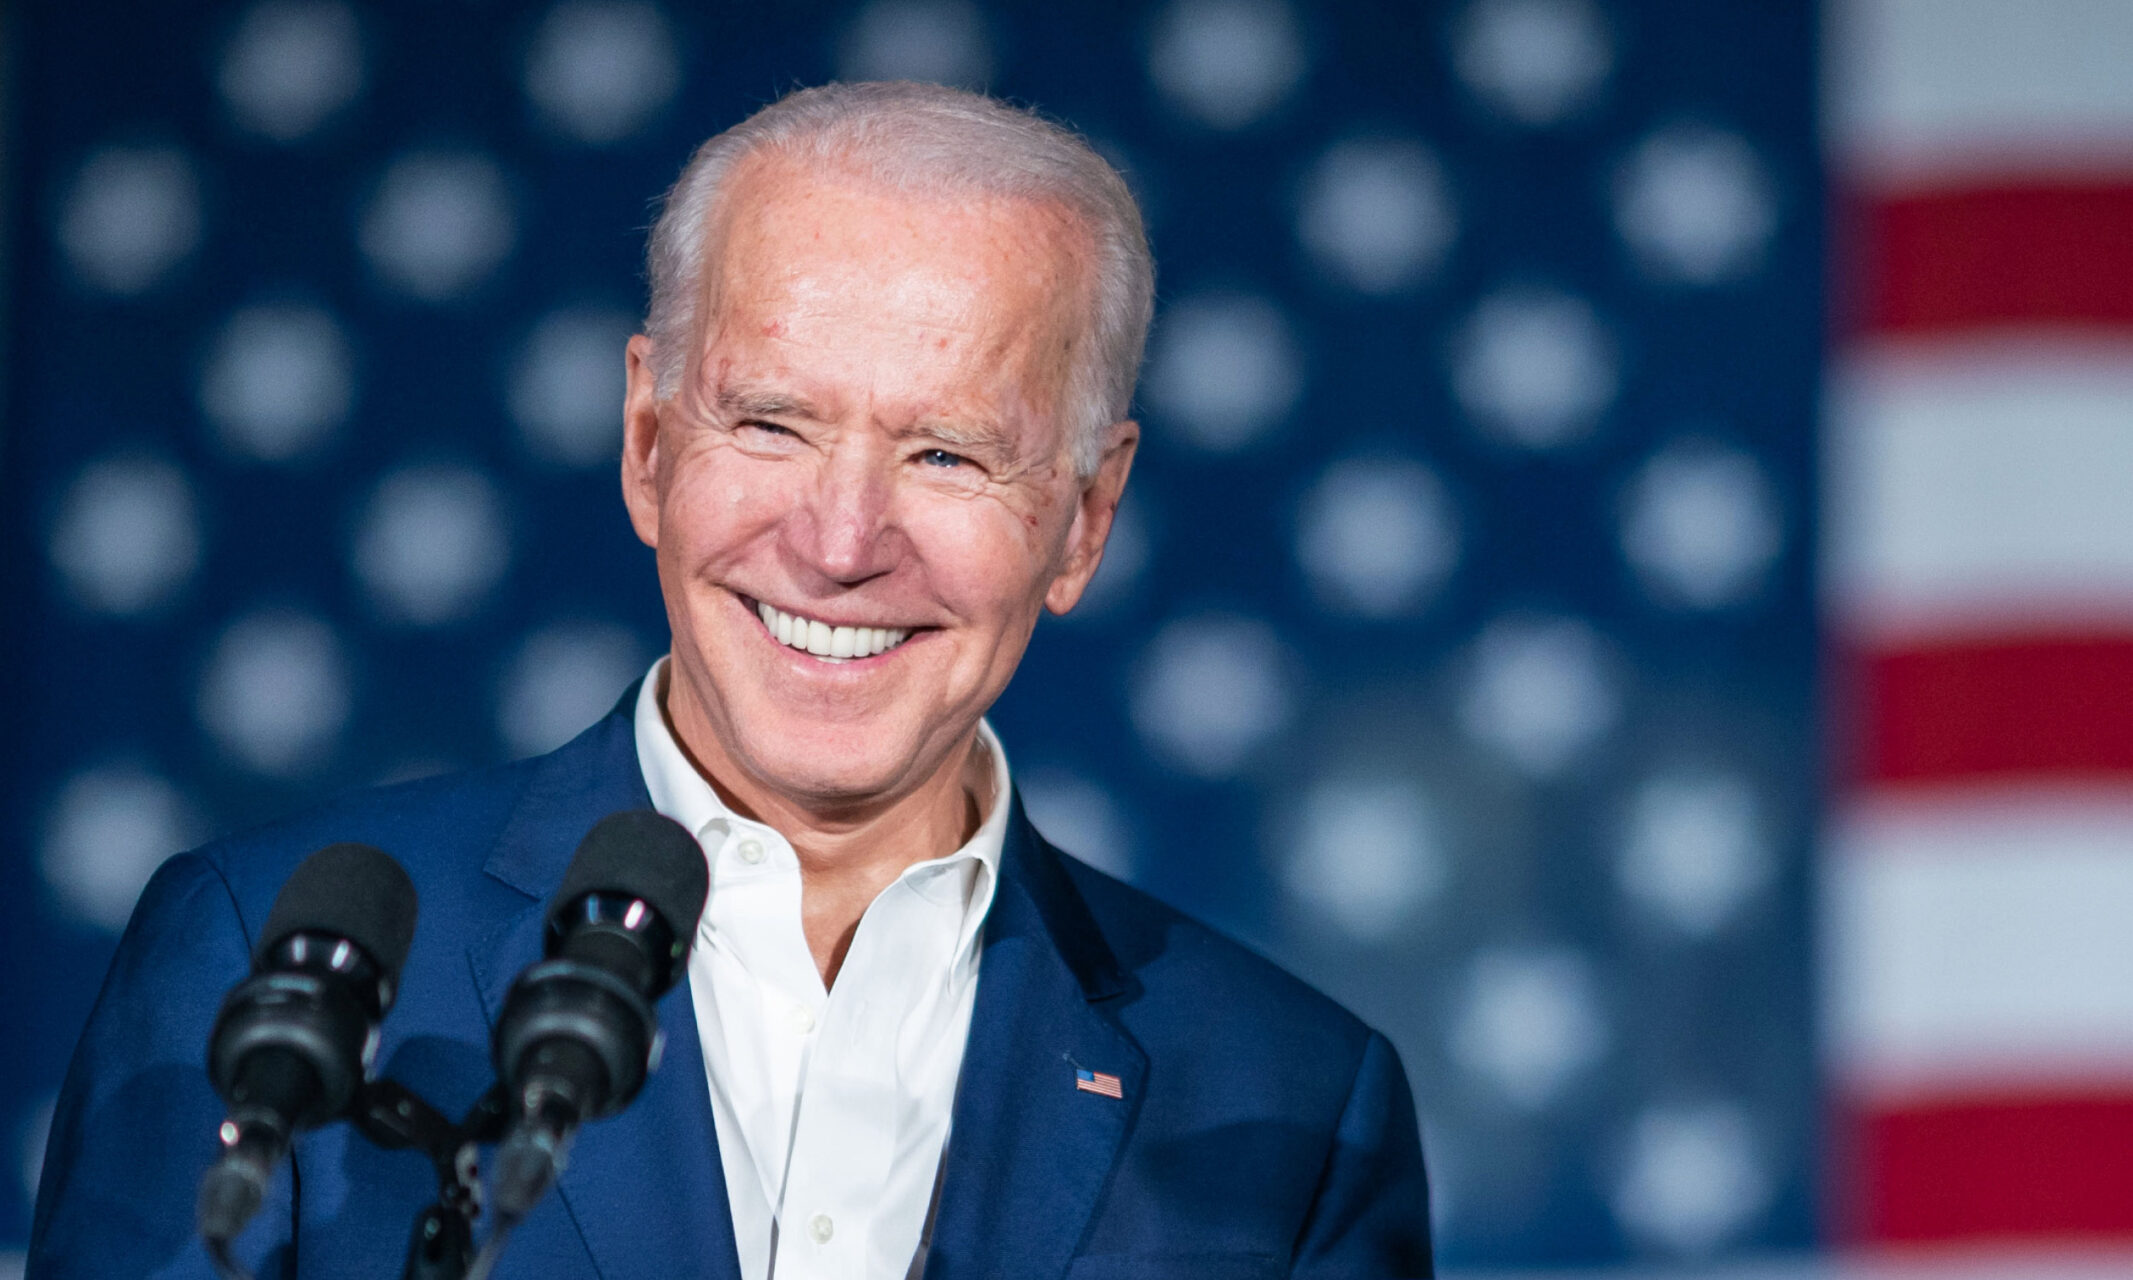 Wisconsin Democrats Issue Statement Ahead of President Biden's Milwaukee Visit